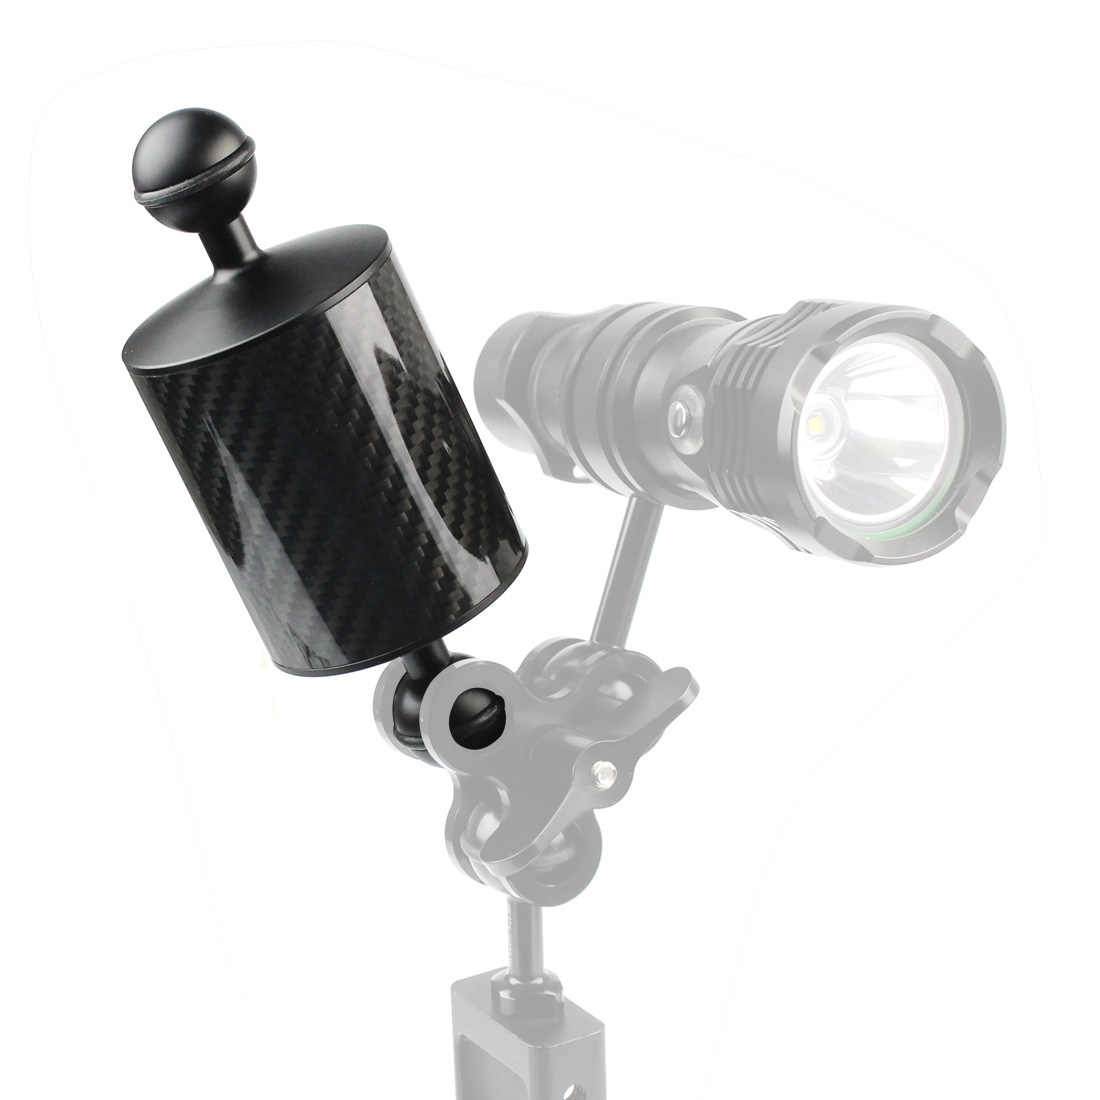 XT-XINTE Underwater Diving Photography Float Arm Carbon Fiber Buoyancy Lamp Arm Dual Hand-Held Accessories 1 Inch Dual Ball Head D60mm Upgraded Version